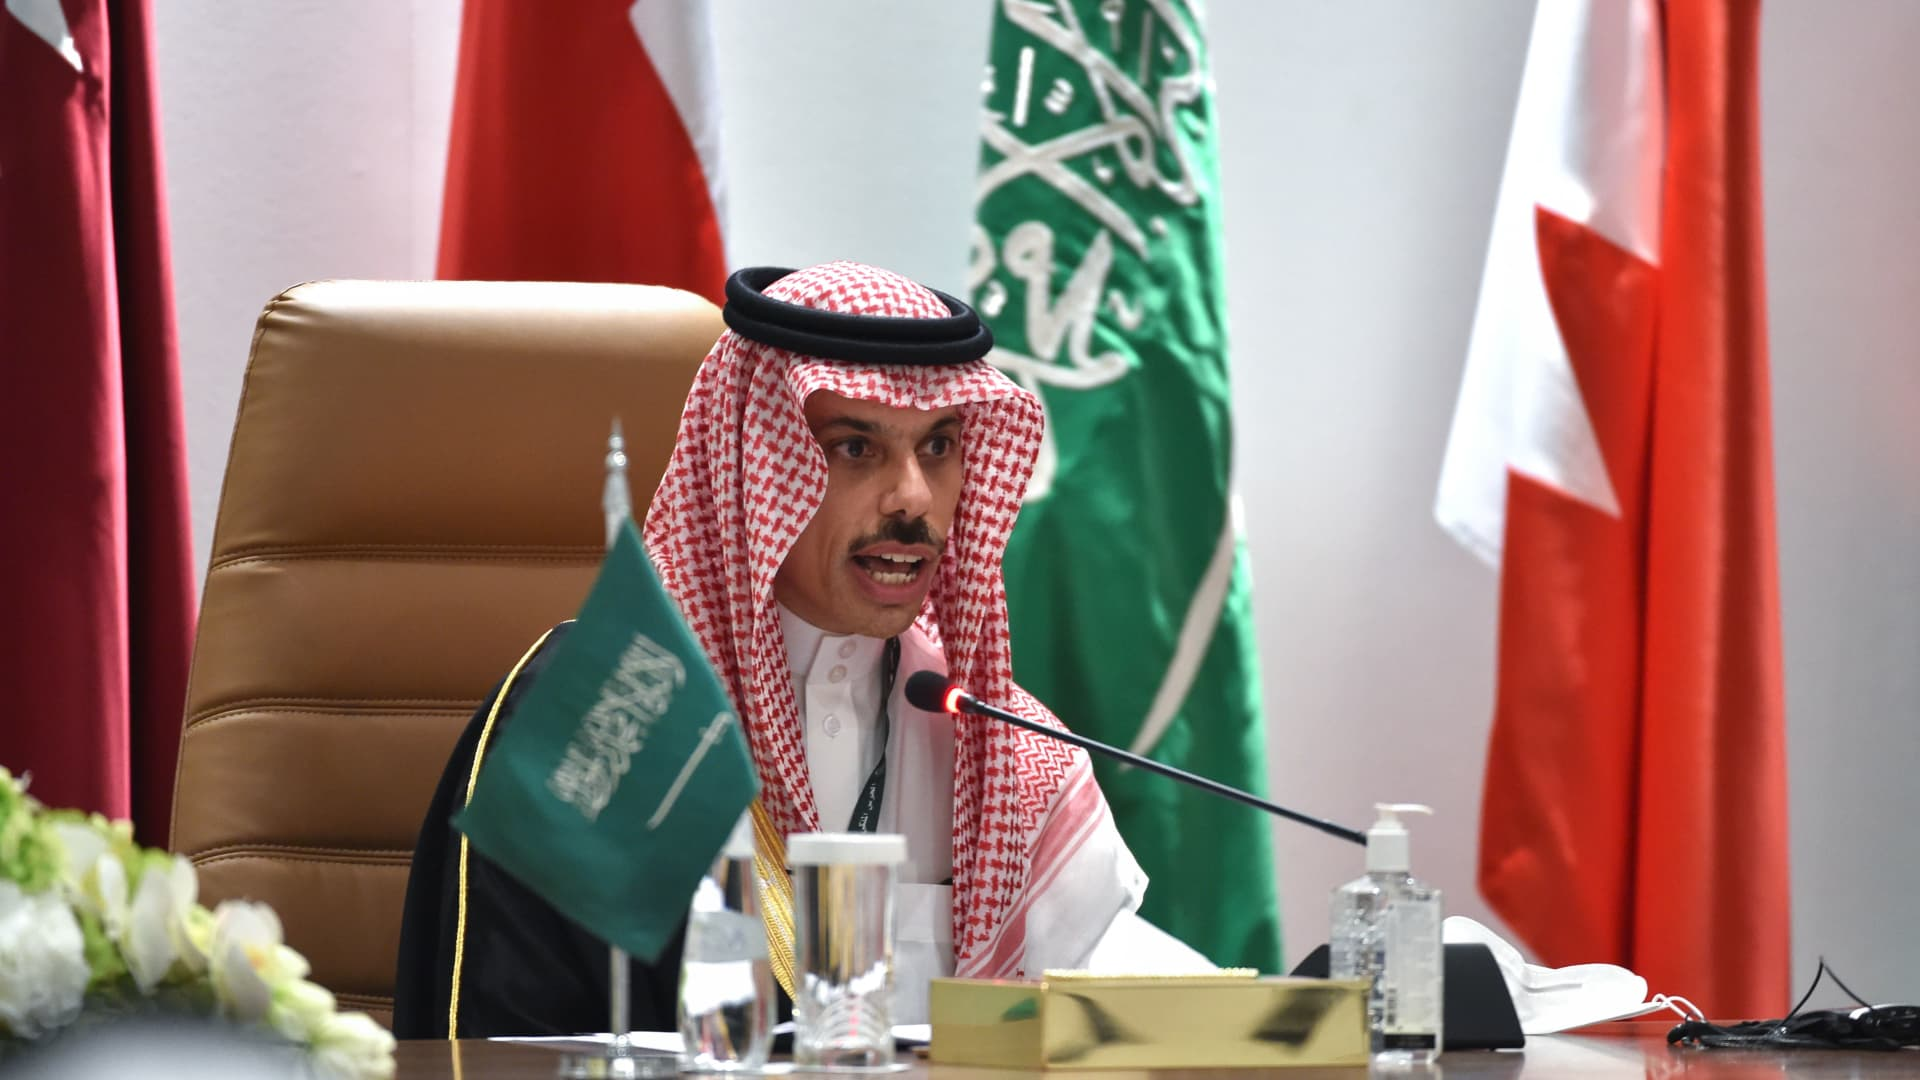 Saudi Foreign Minister Faisal bin Farhan al-Saud holds a press conferece at the end of the 41st Gulf Cooperation Council (GCC) summit, in the city of al-Ula in northwestern Saudi Arabia on January 5, 2021.